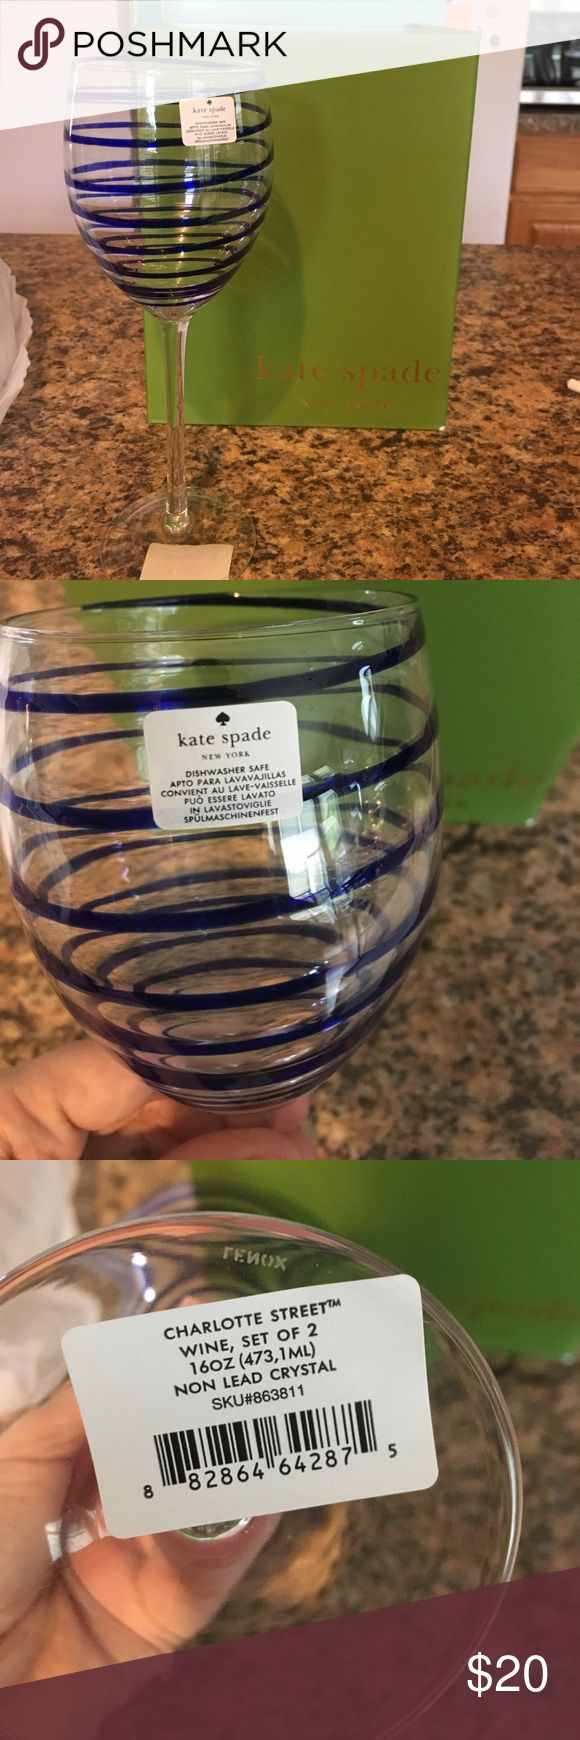 The 25 best lenox crystal ideas on pinterest crystal glassware kate spade lenox crystal wine glasses nwt reviewsmspy